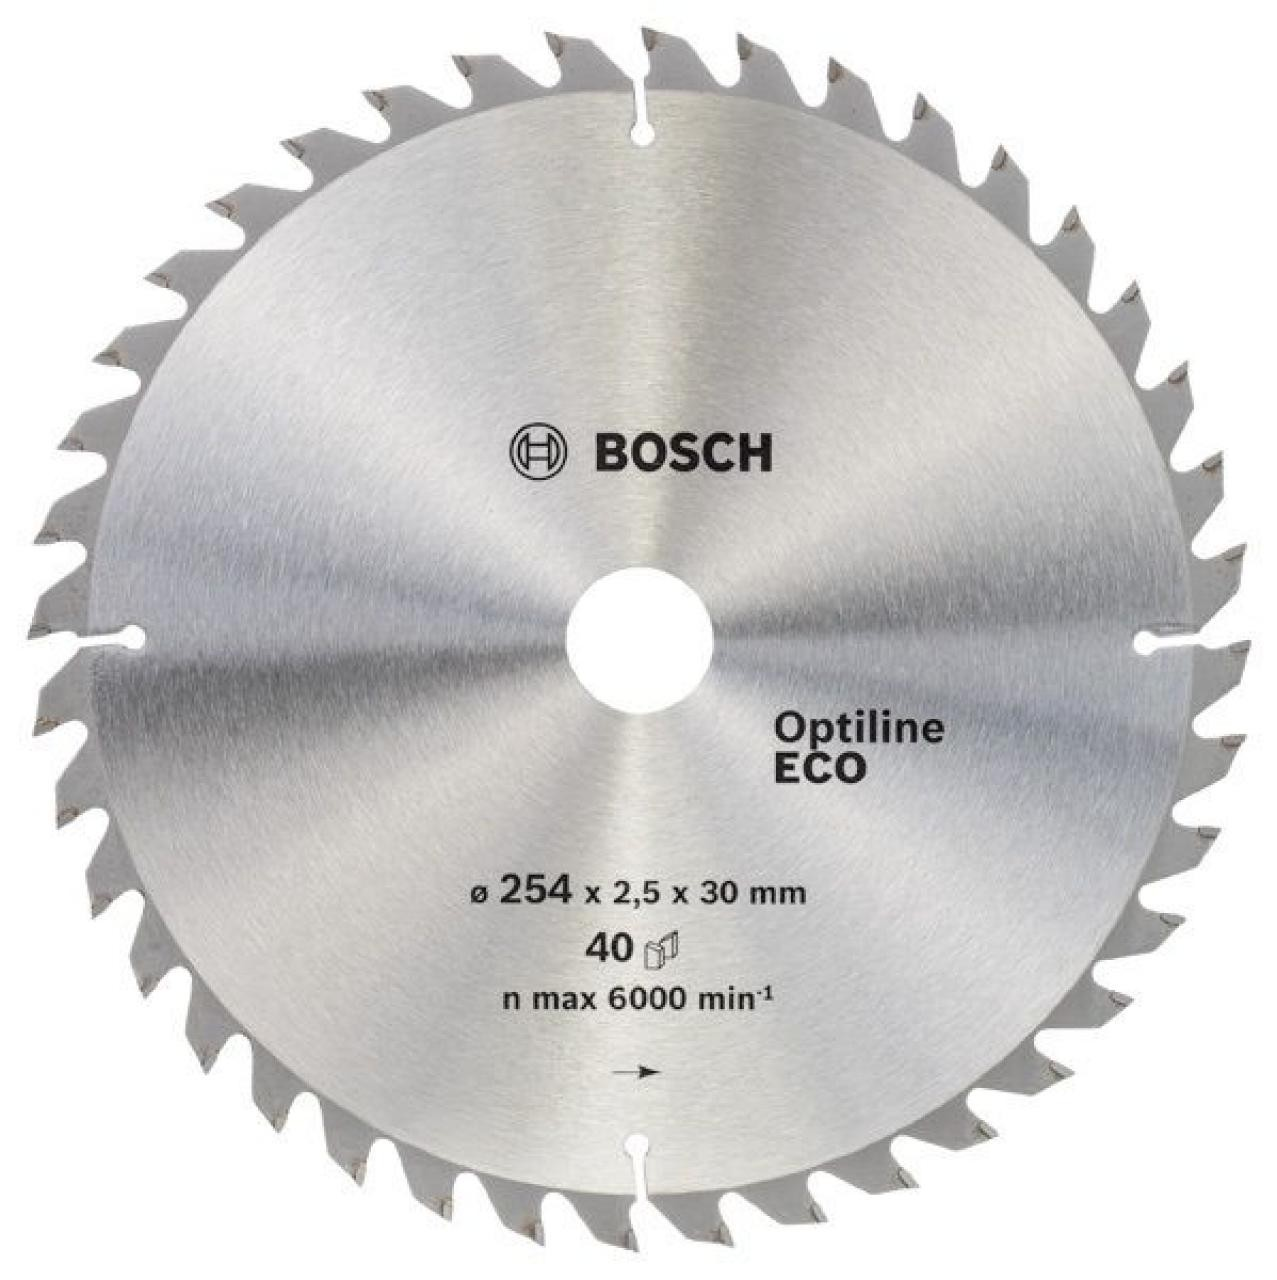 Диск пильный ф254х30 z40 Optiline Wood Eco BOSCH 2 608 641 795